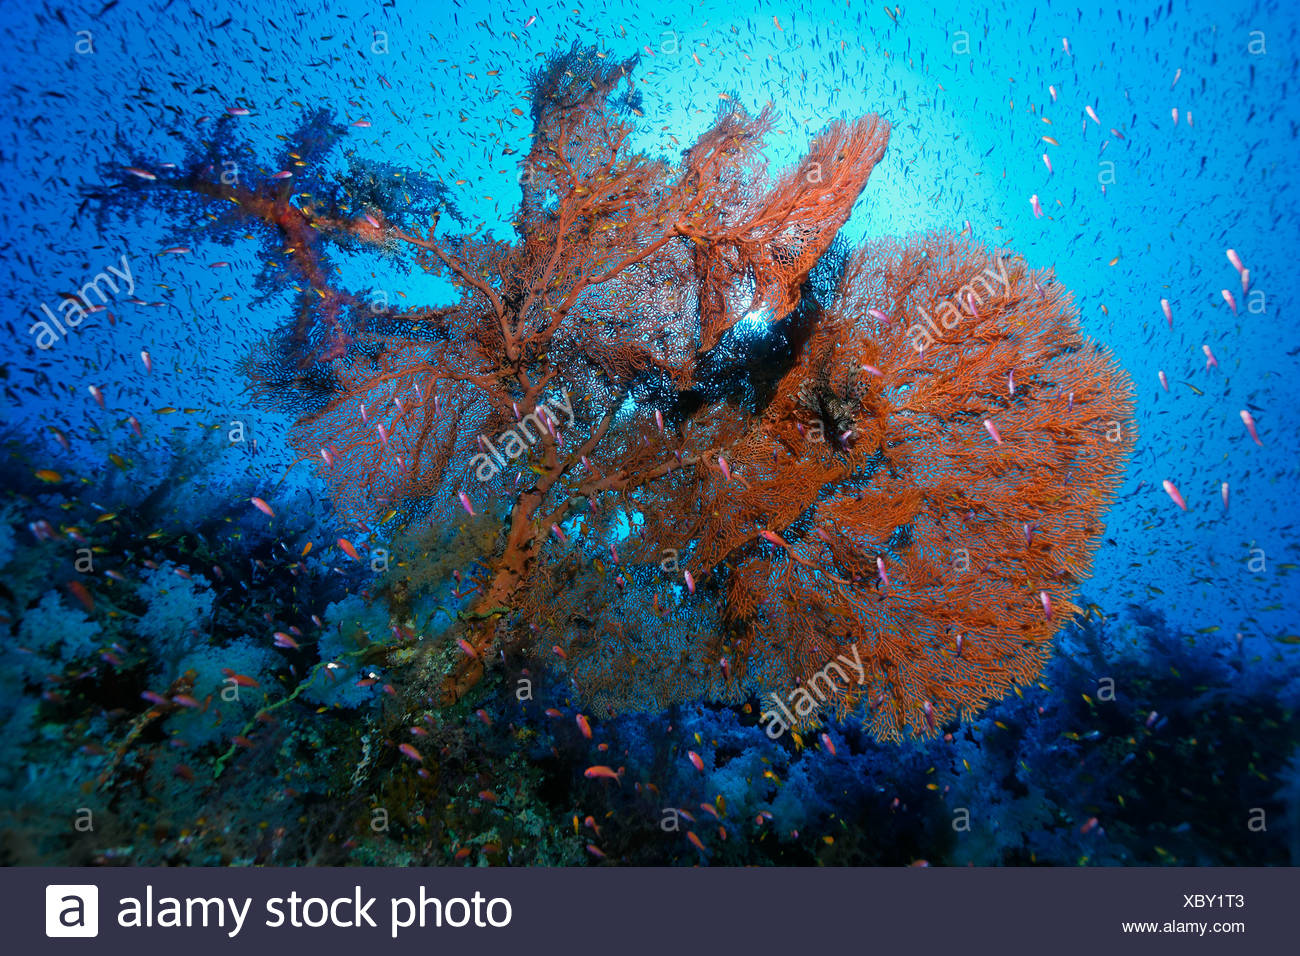 Sun shining through the water surface, large Sea Fan (Annella mollis), Fairy Basselets (Pseudoanthias sp.), Hurghada - Stock Image